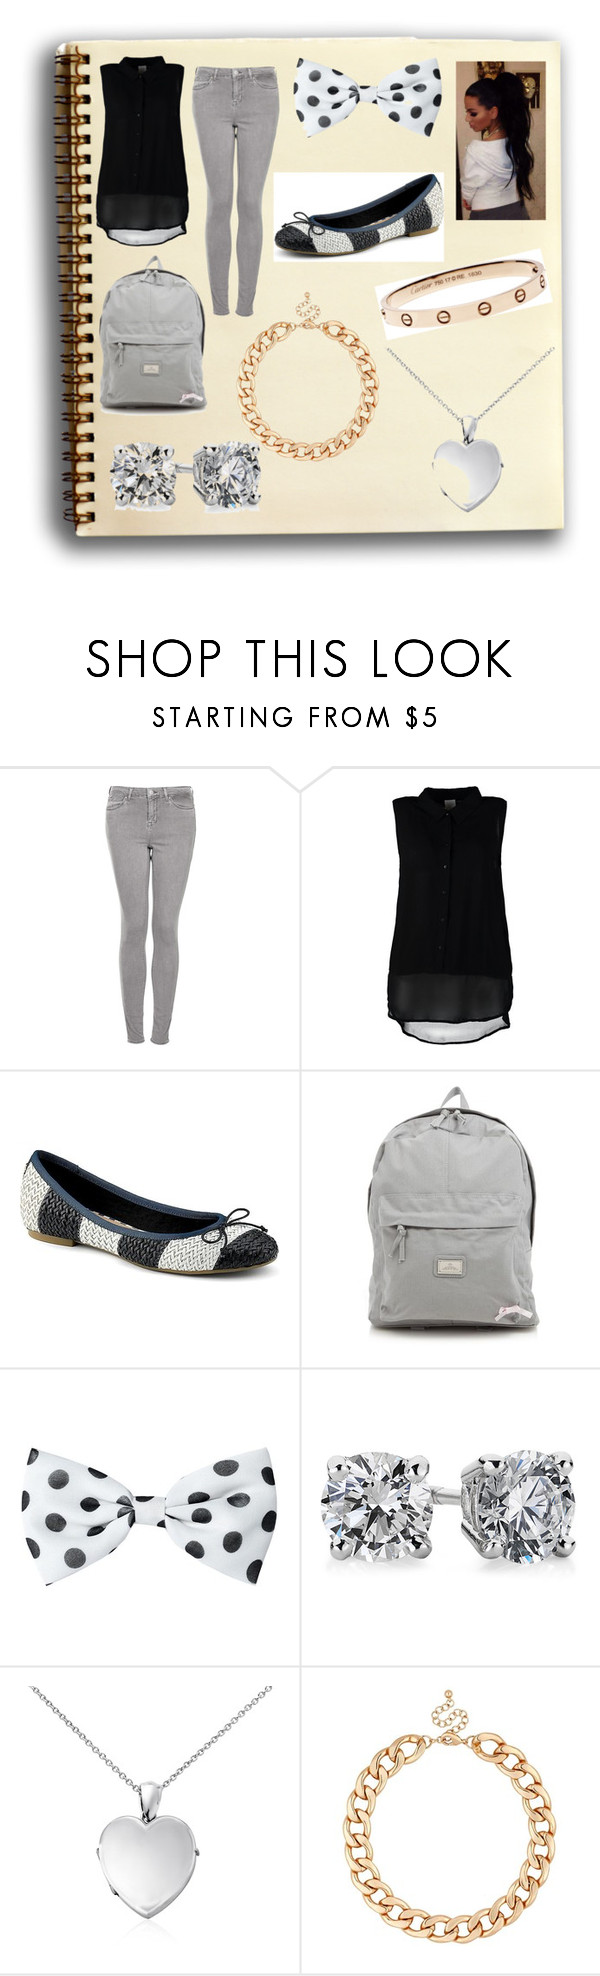 """""""#B004"""" by daniela-reyes-1988 ❤ liked on Polyvore featuring beauty, Topshop, Vero Moda, Sperry, Red Herring, Blue Nile and MOOD"""